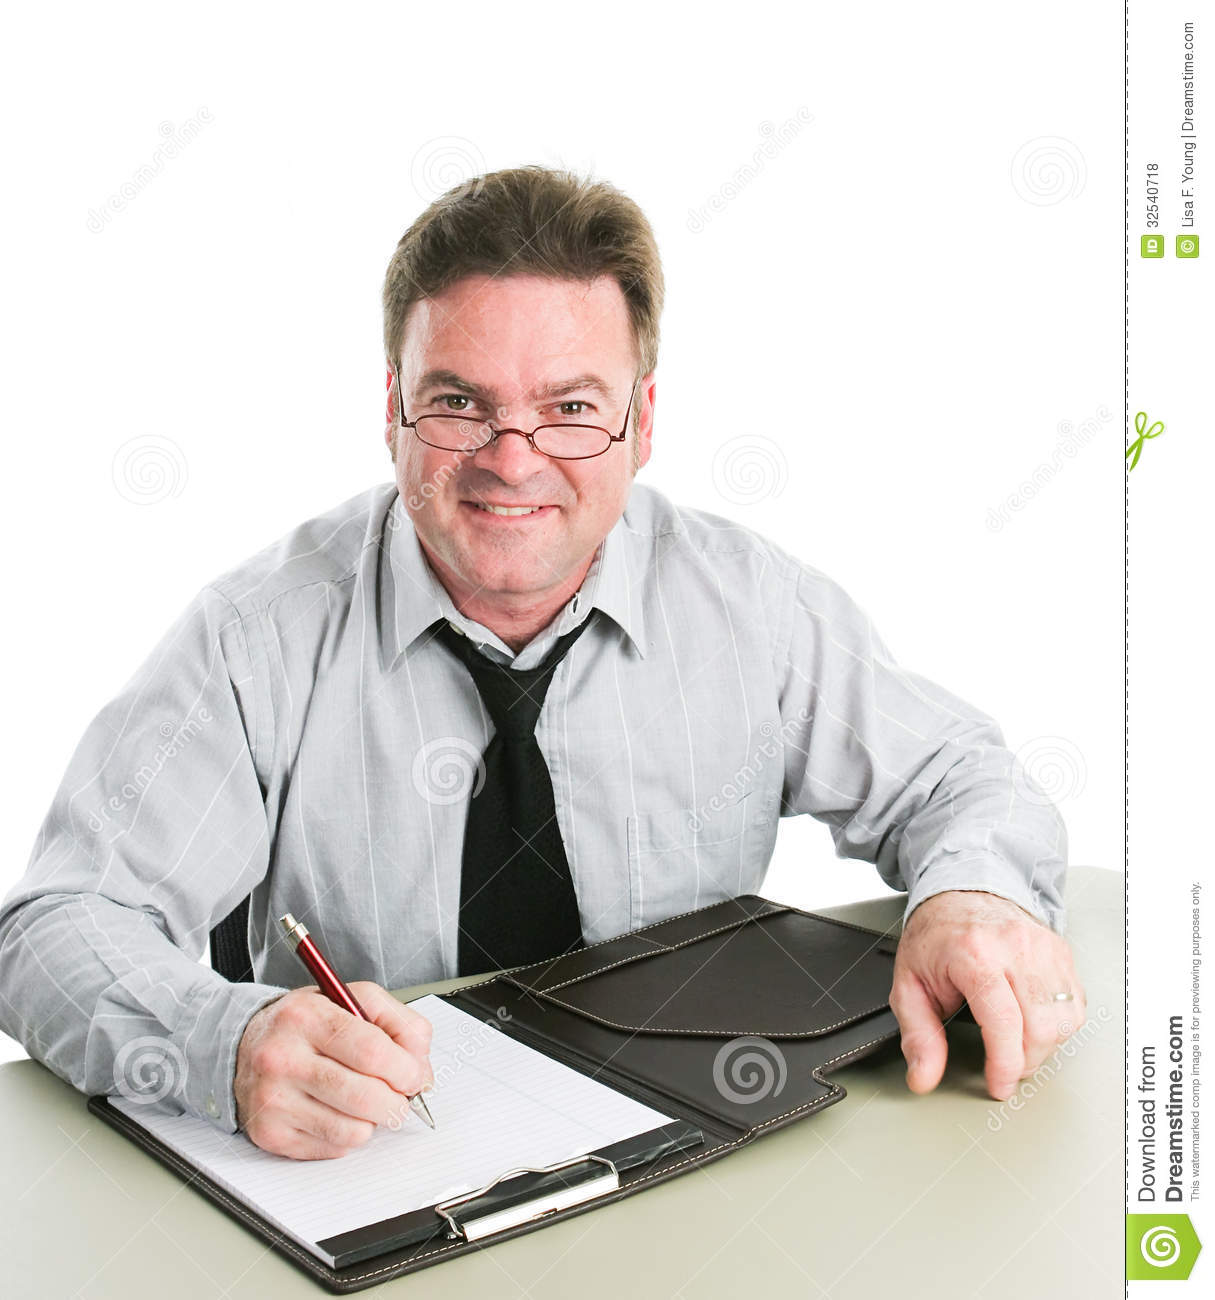 Friendly Job Interviewer Royalty Free Stock Photos Image